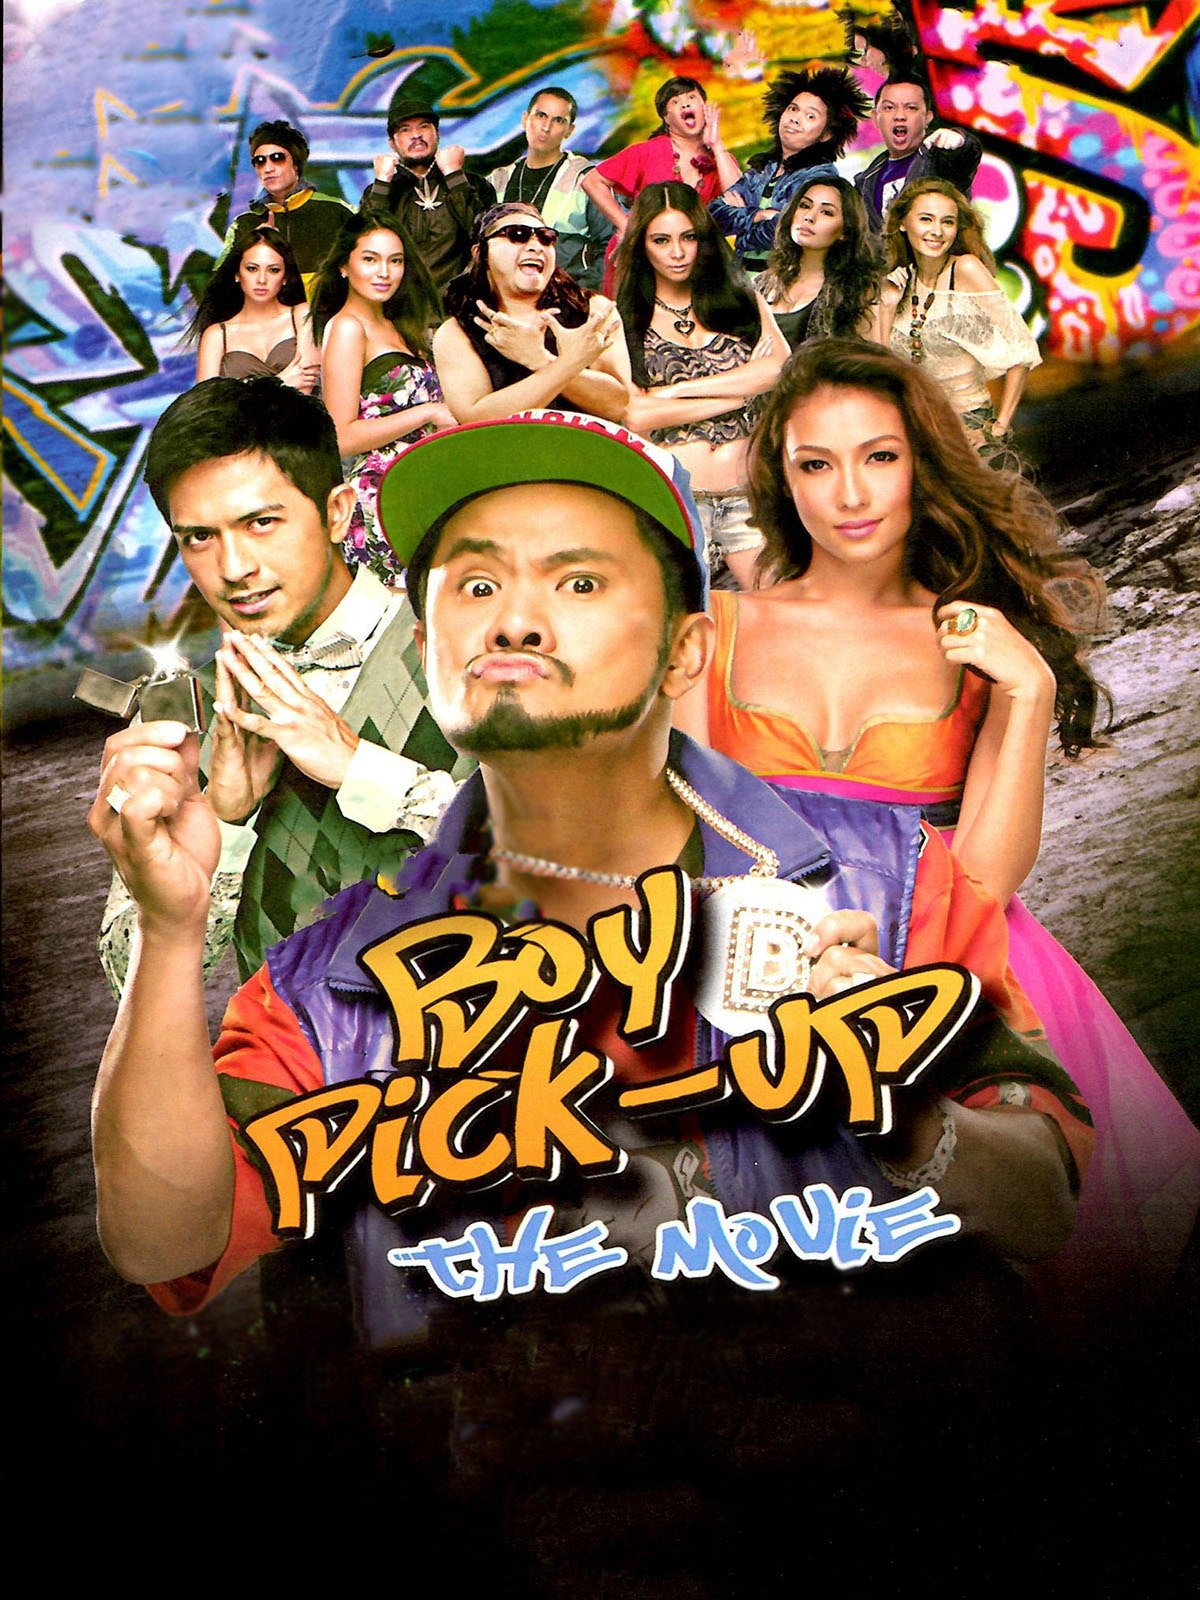 Boy Pick-Up - The Movie on Amazon Prime Video UK